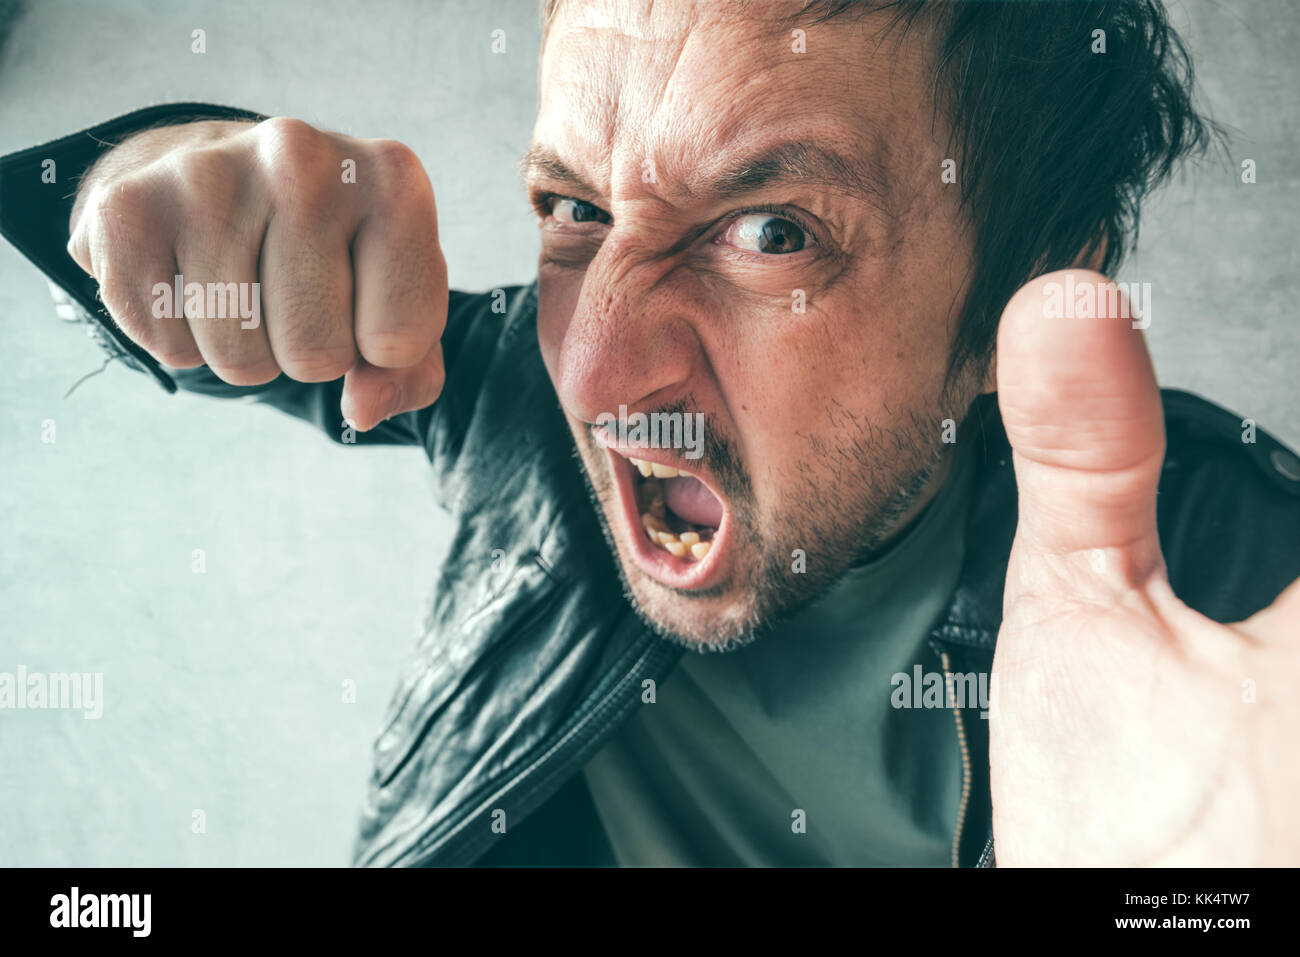 Aggressive man punching with fist during the fight, from victim's point of view. Violence and crime concept. - Stock Image